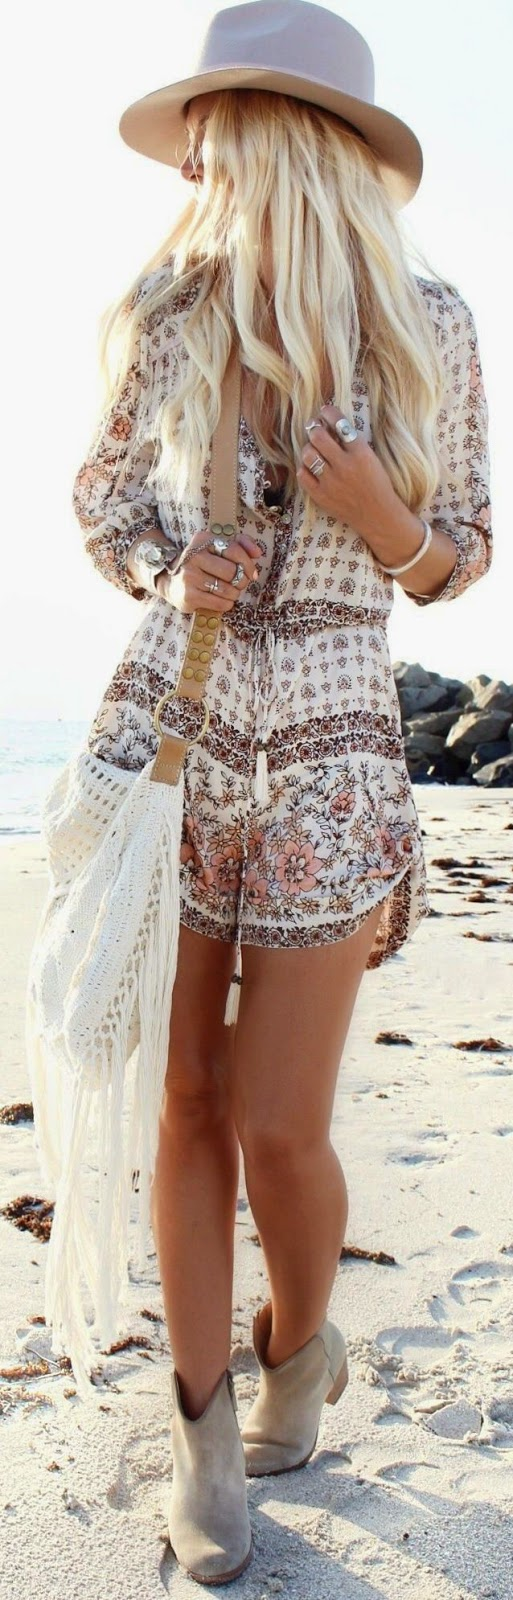 Cowboy boots beach outfit